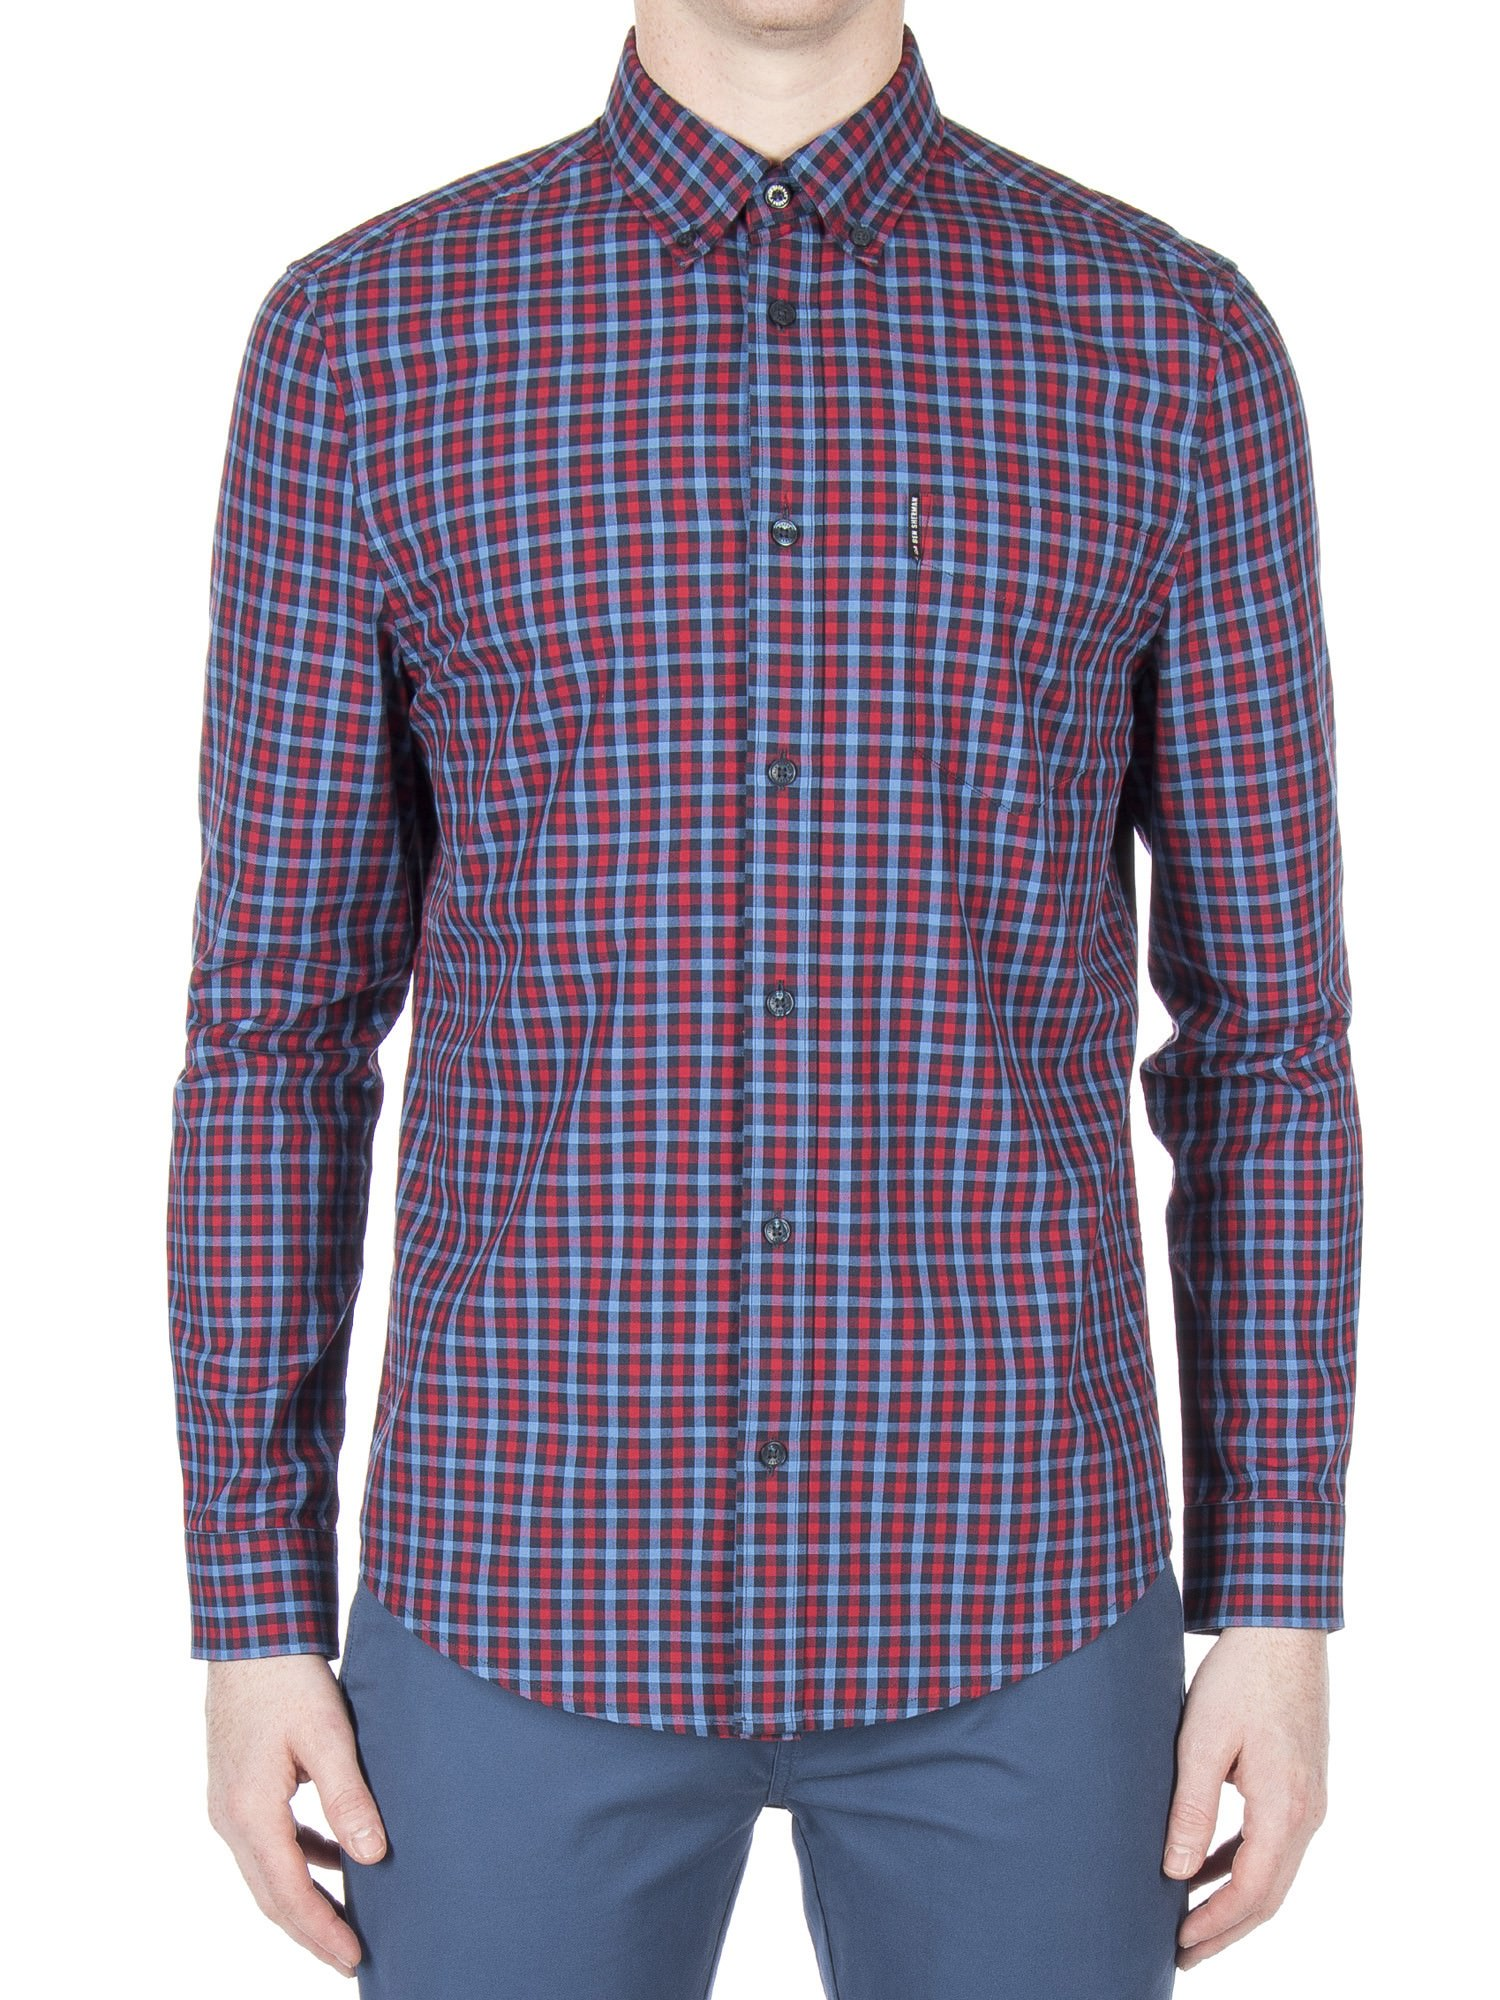 Ben Sherman Bright Cobalt Long Sleeve House Gingham Shirt Regular Fit (Mod Fit)